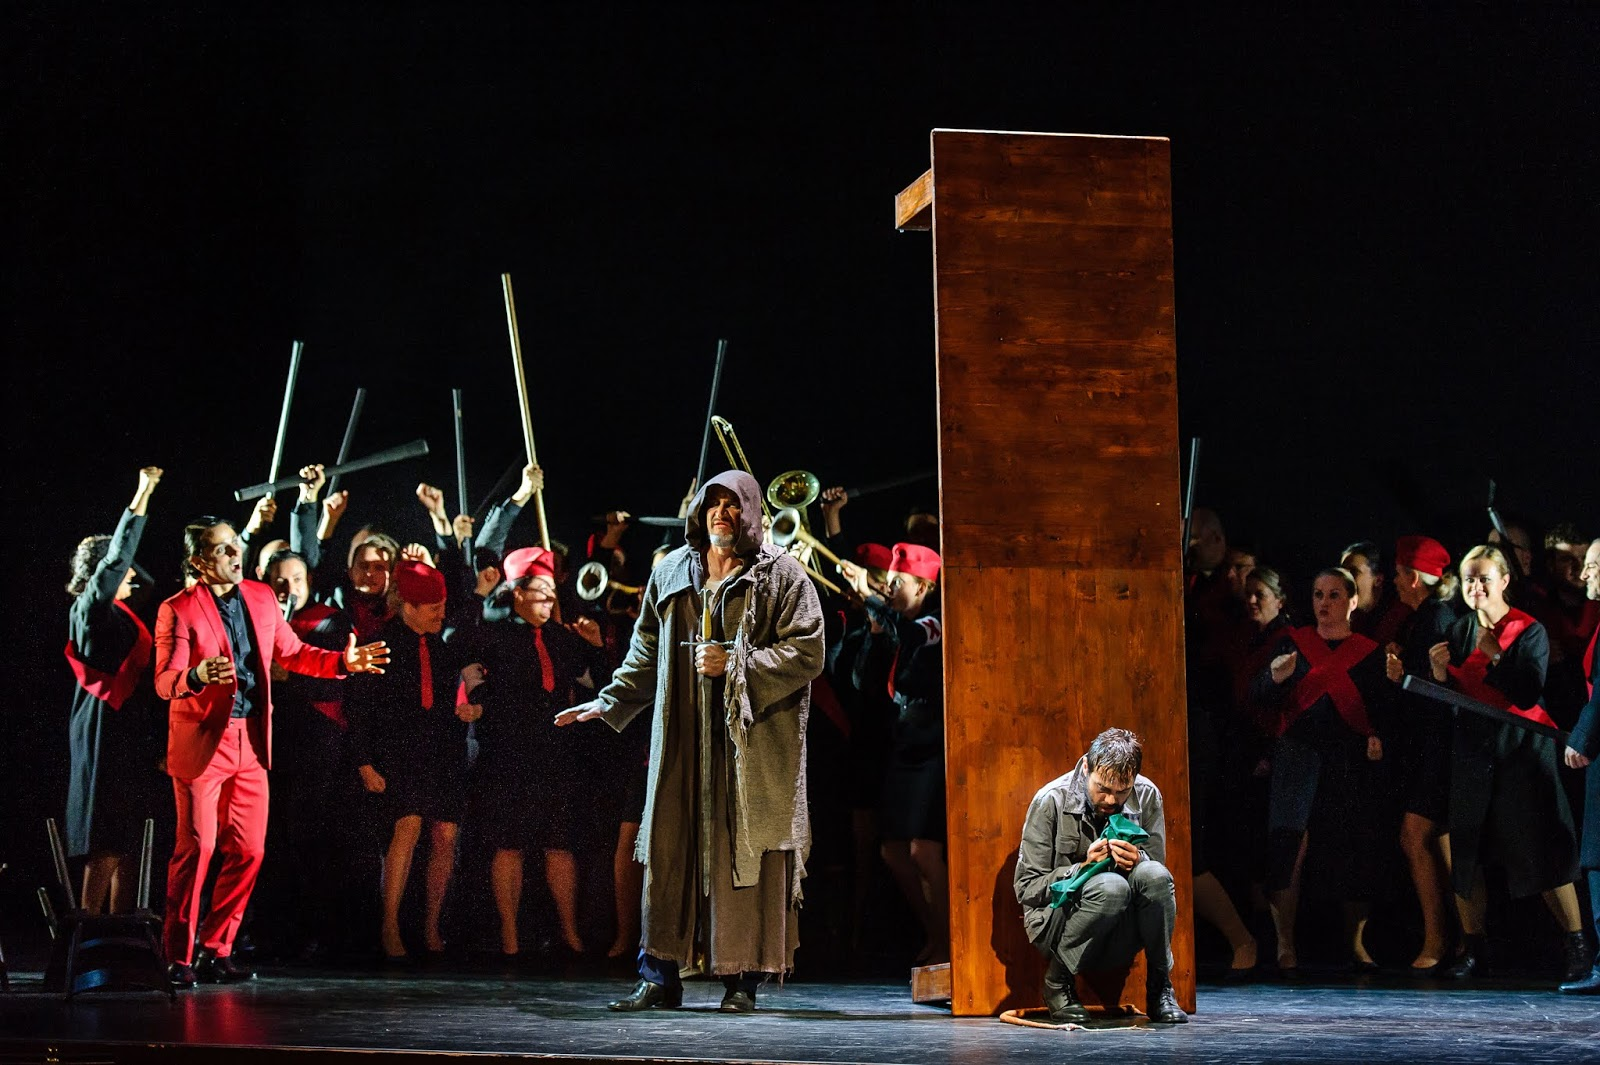 Lithe & musically engaging: Verdi's I Lombardi from the Heidenheim Opera Festival